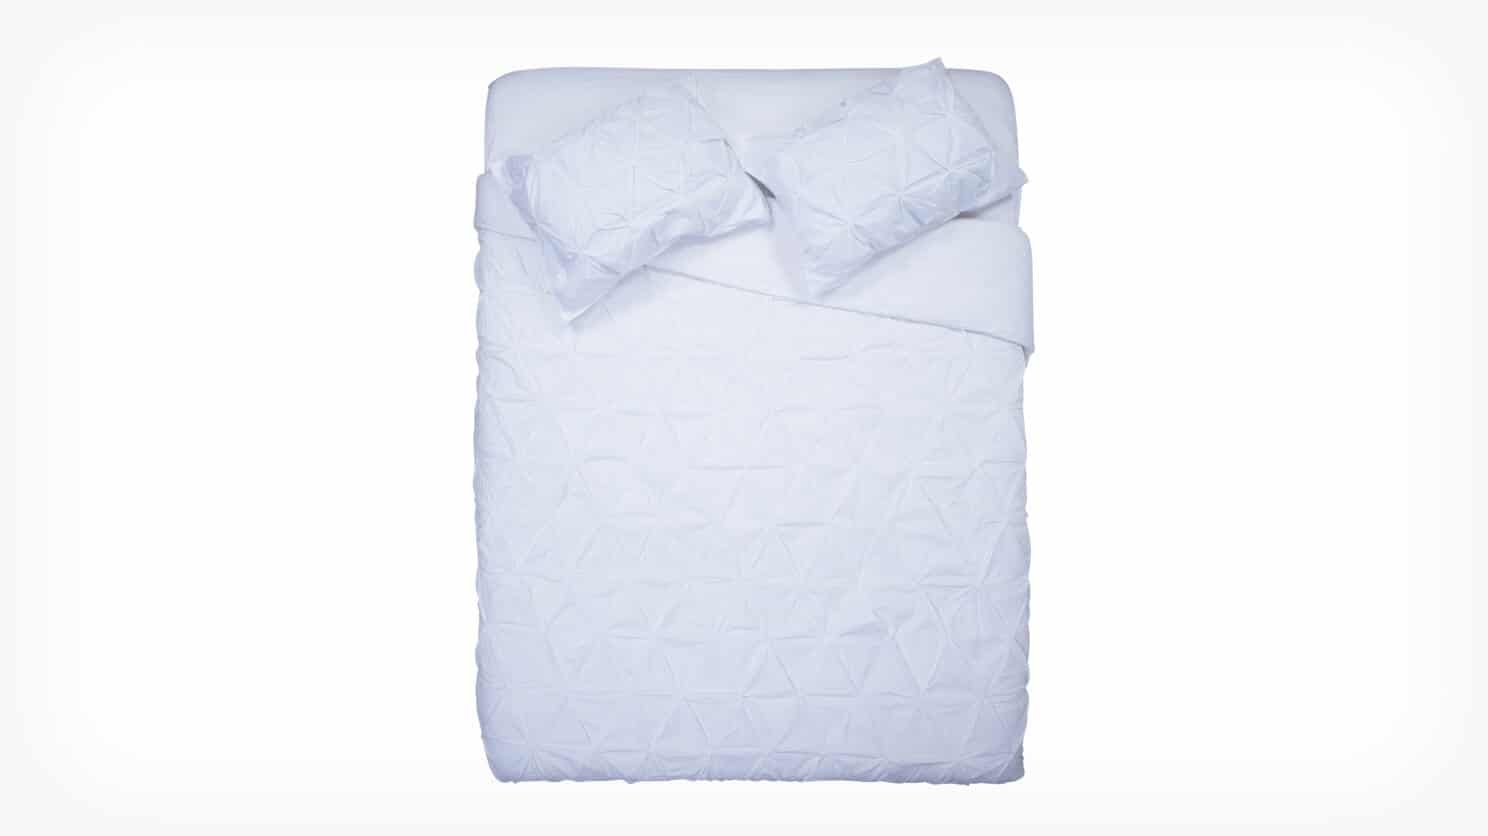 3170 361 0 4 duvet moncton white double queen overhead